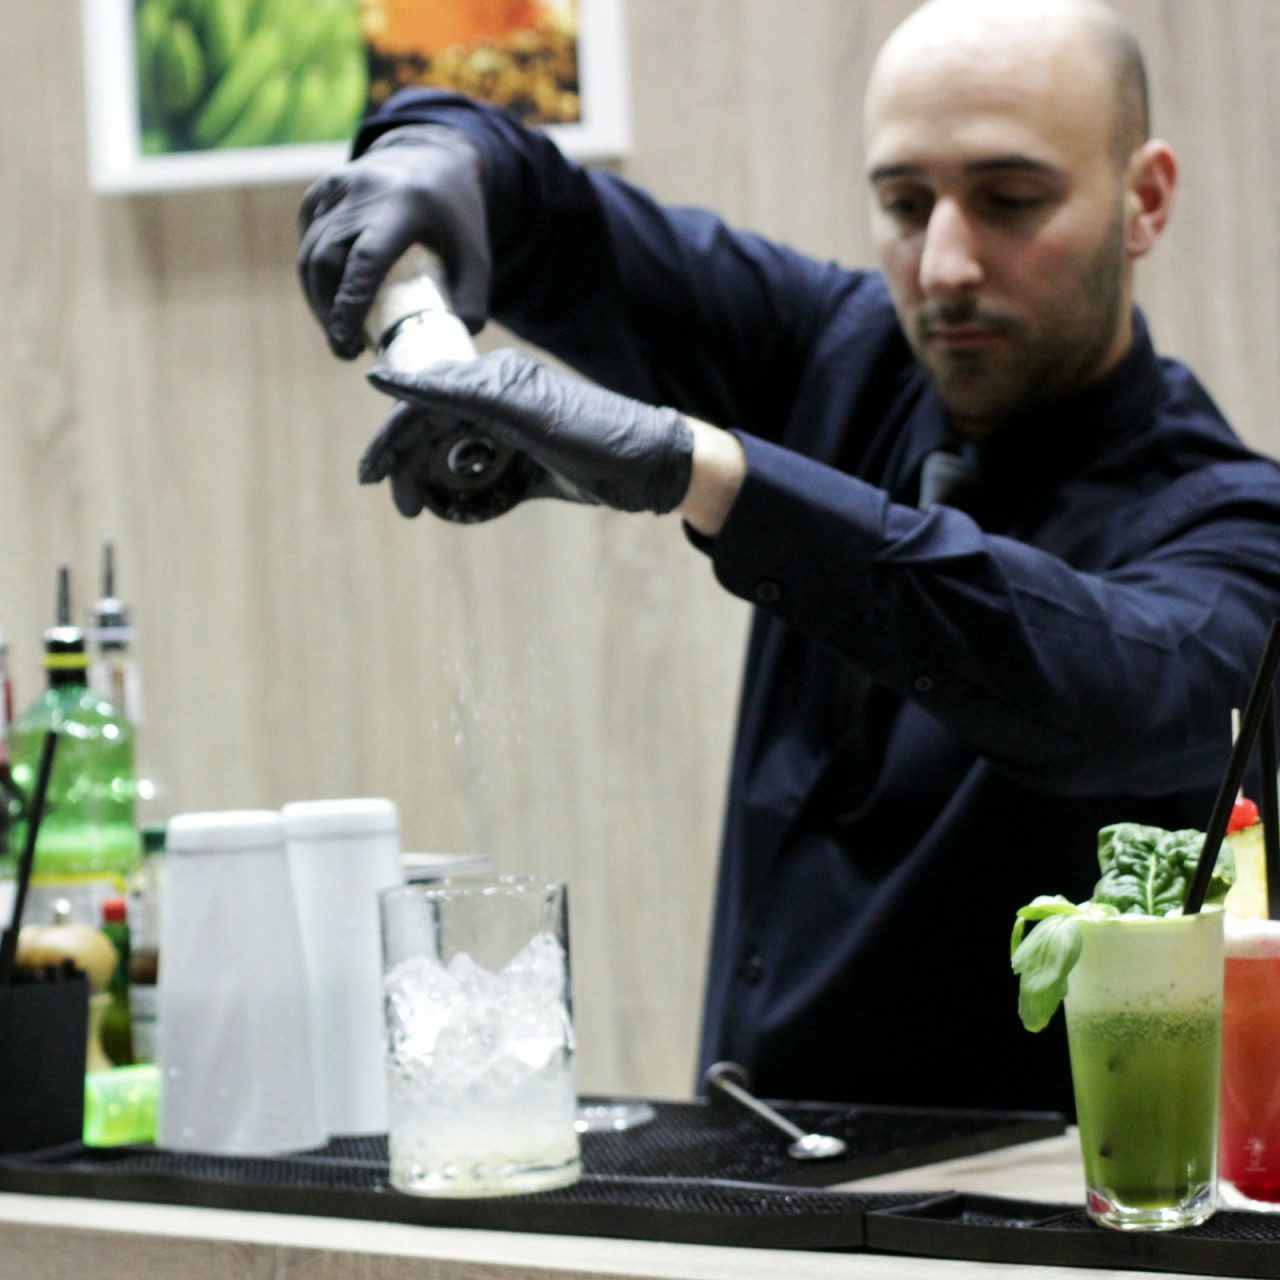 FLAIRLAB, Cocktail catering, Cocktailshow, Fruitlogistica 2016 12